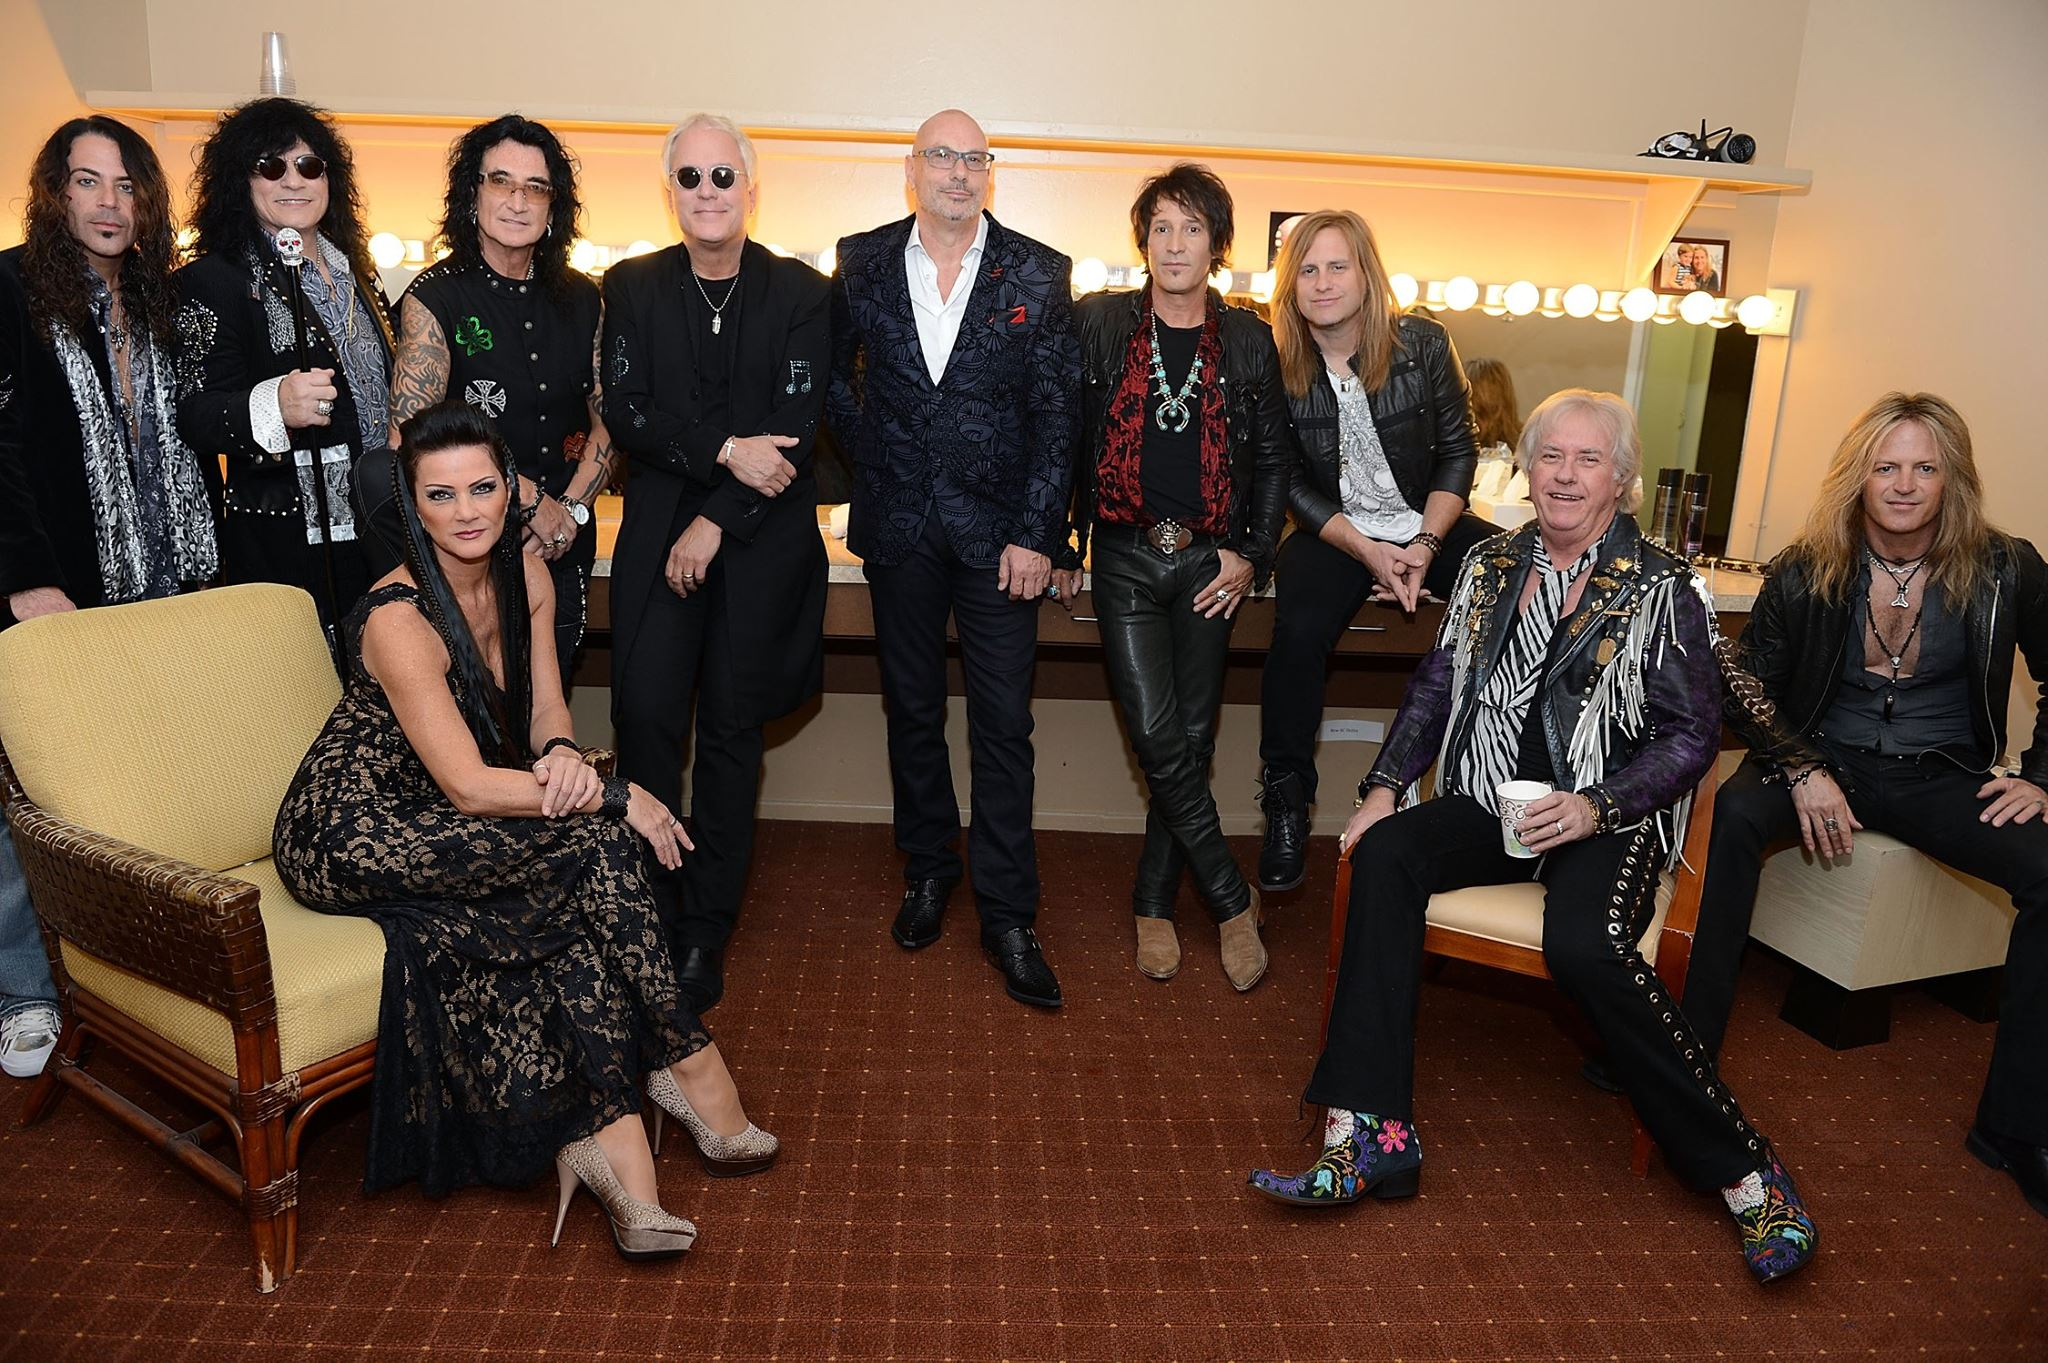 """Raiding the Rock Vault"""" Celebrates Debut at The New Tropicana Las Vegas with Star-Studded Red Carpet Event"""